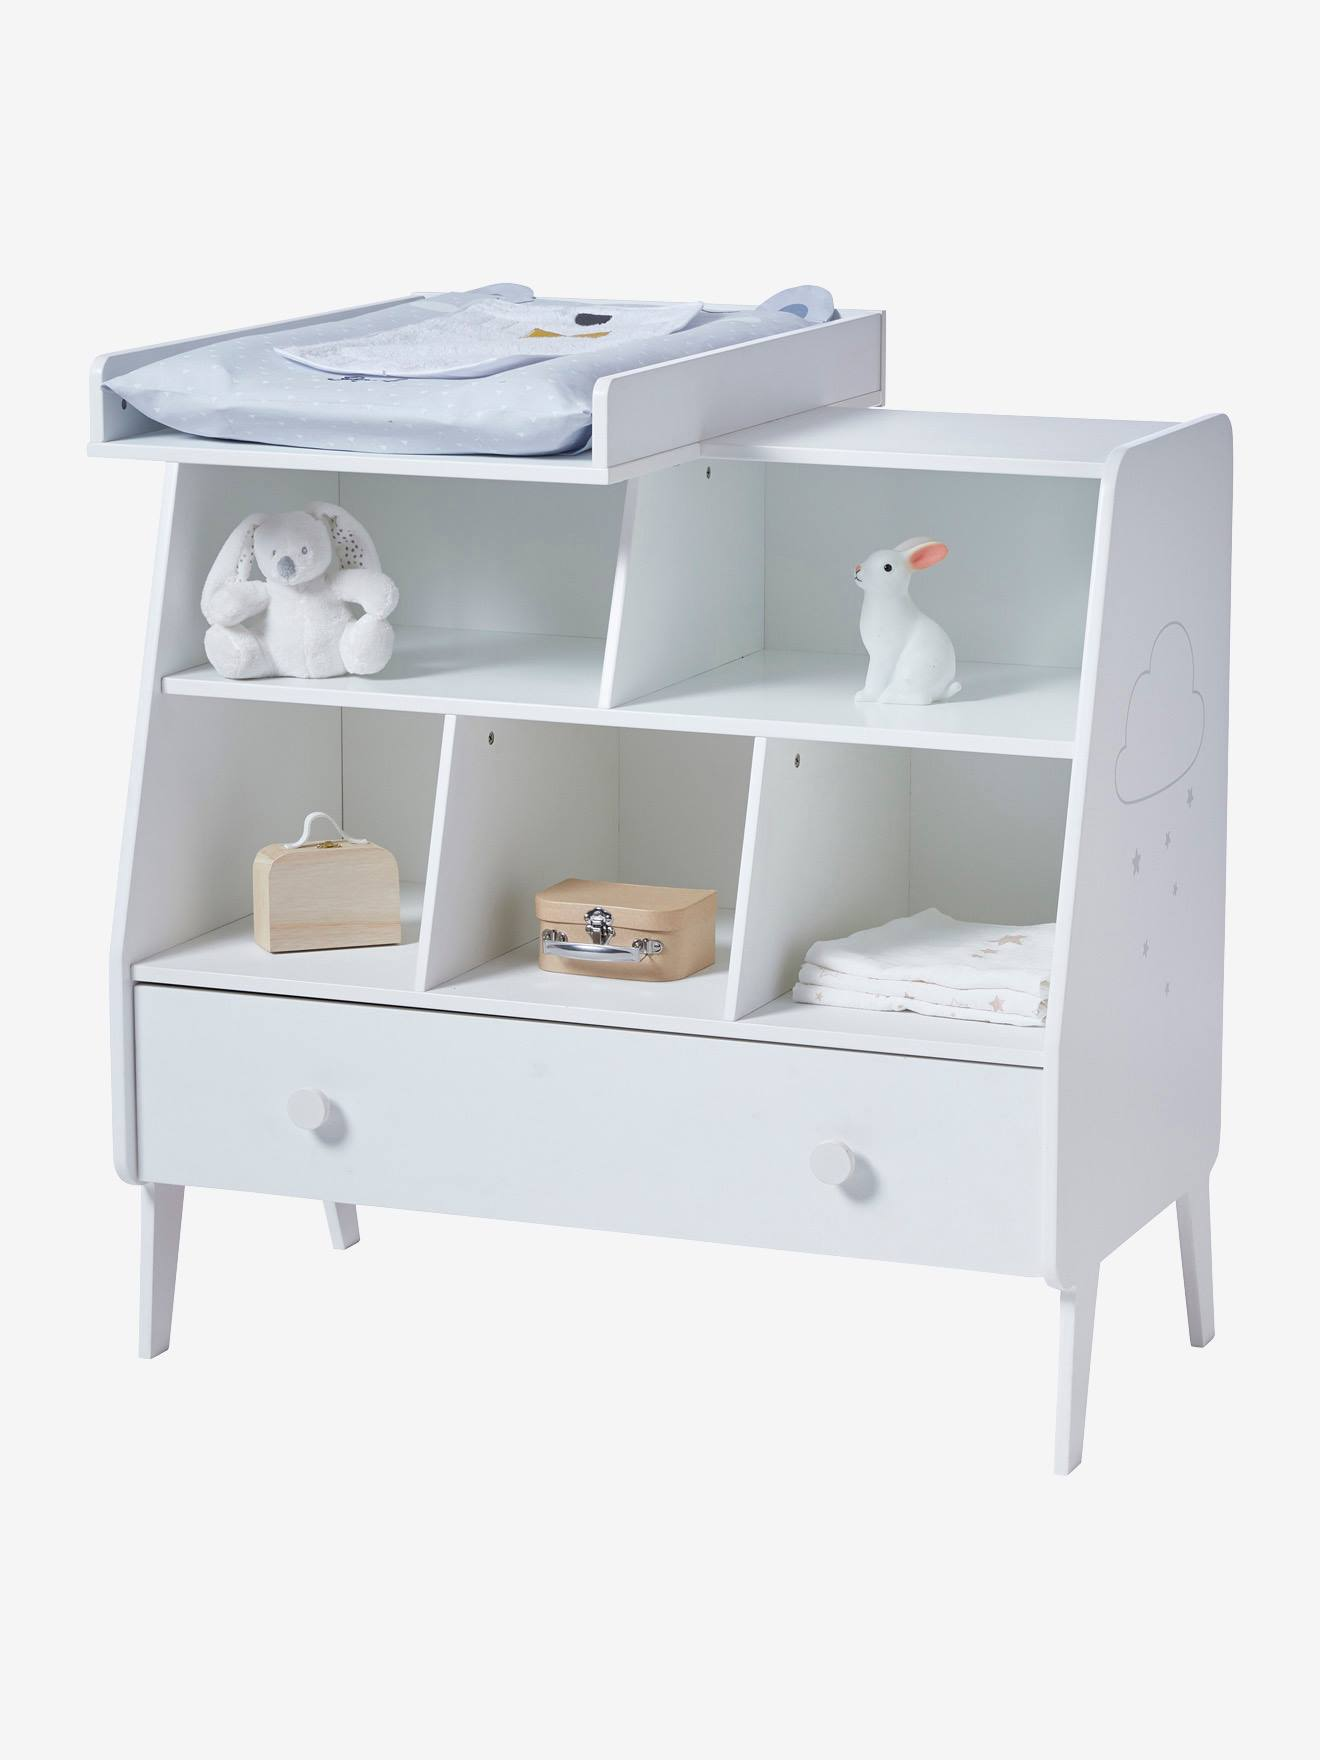 Vertbaudet Regal Fur Babyzimmer Traumwolke In Weiss